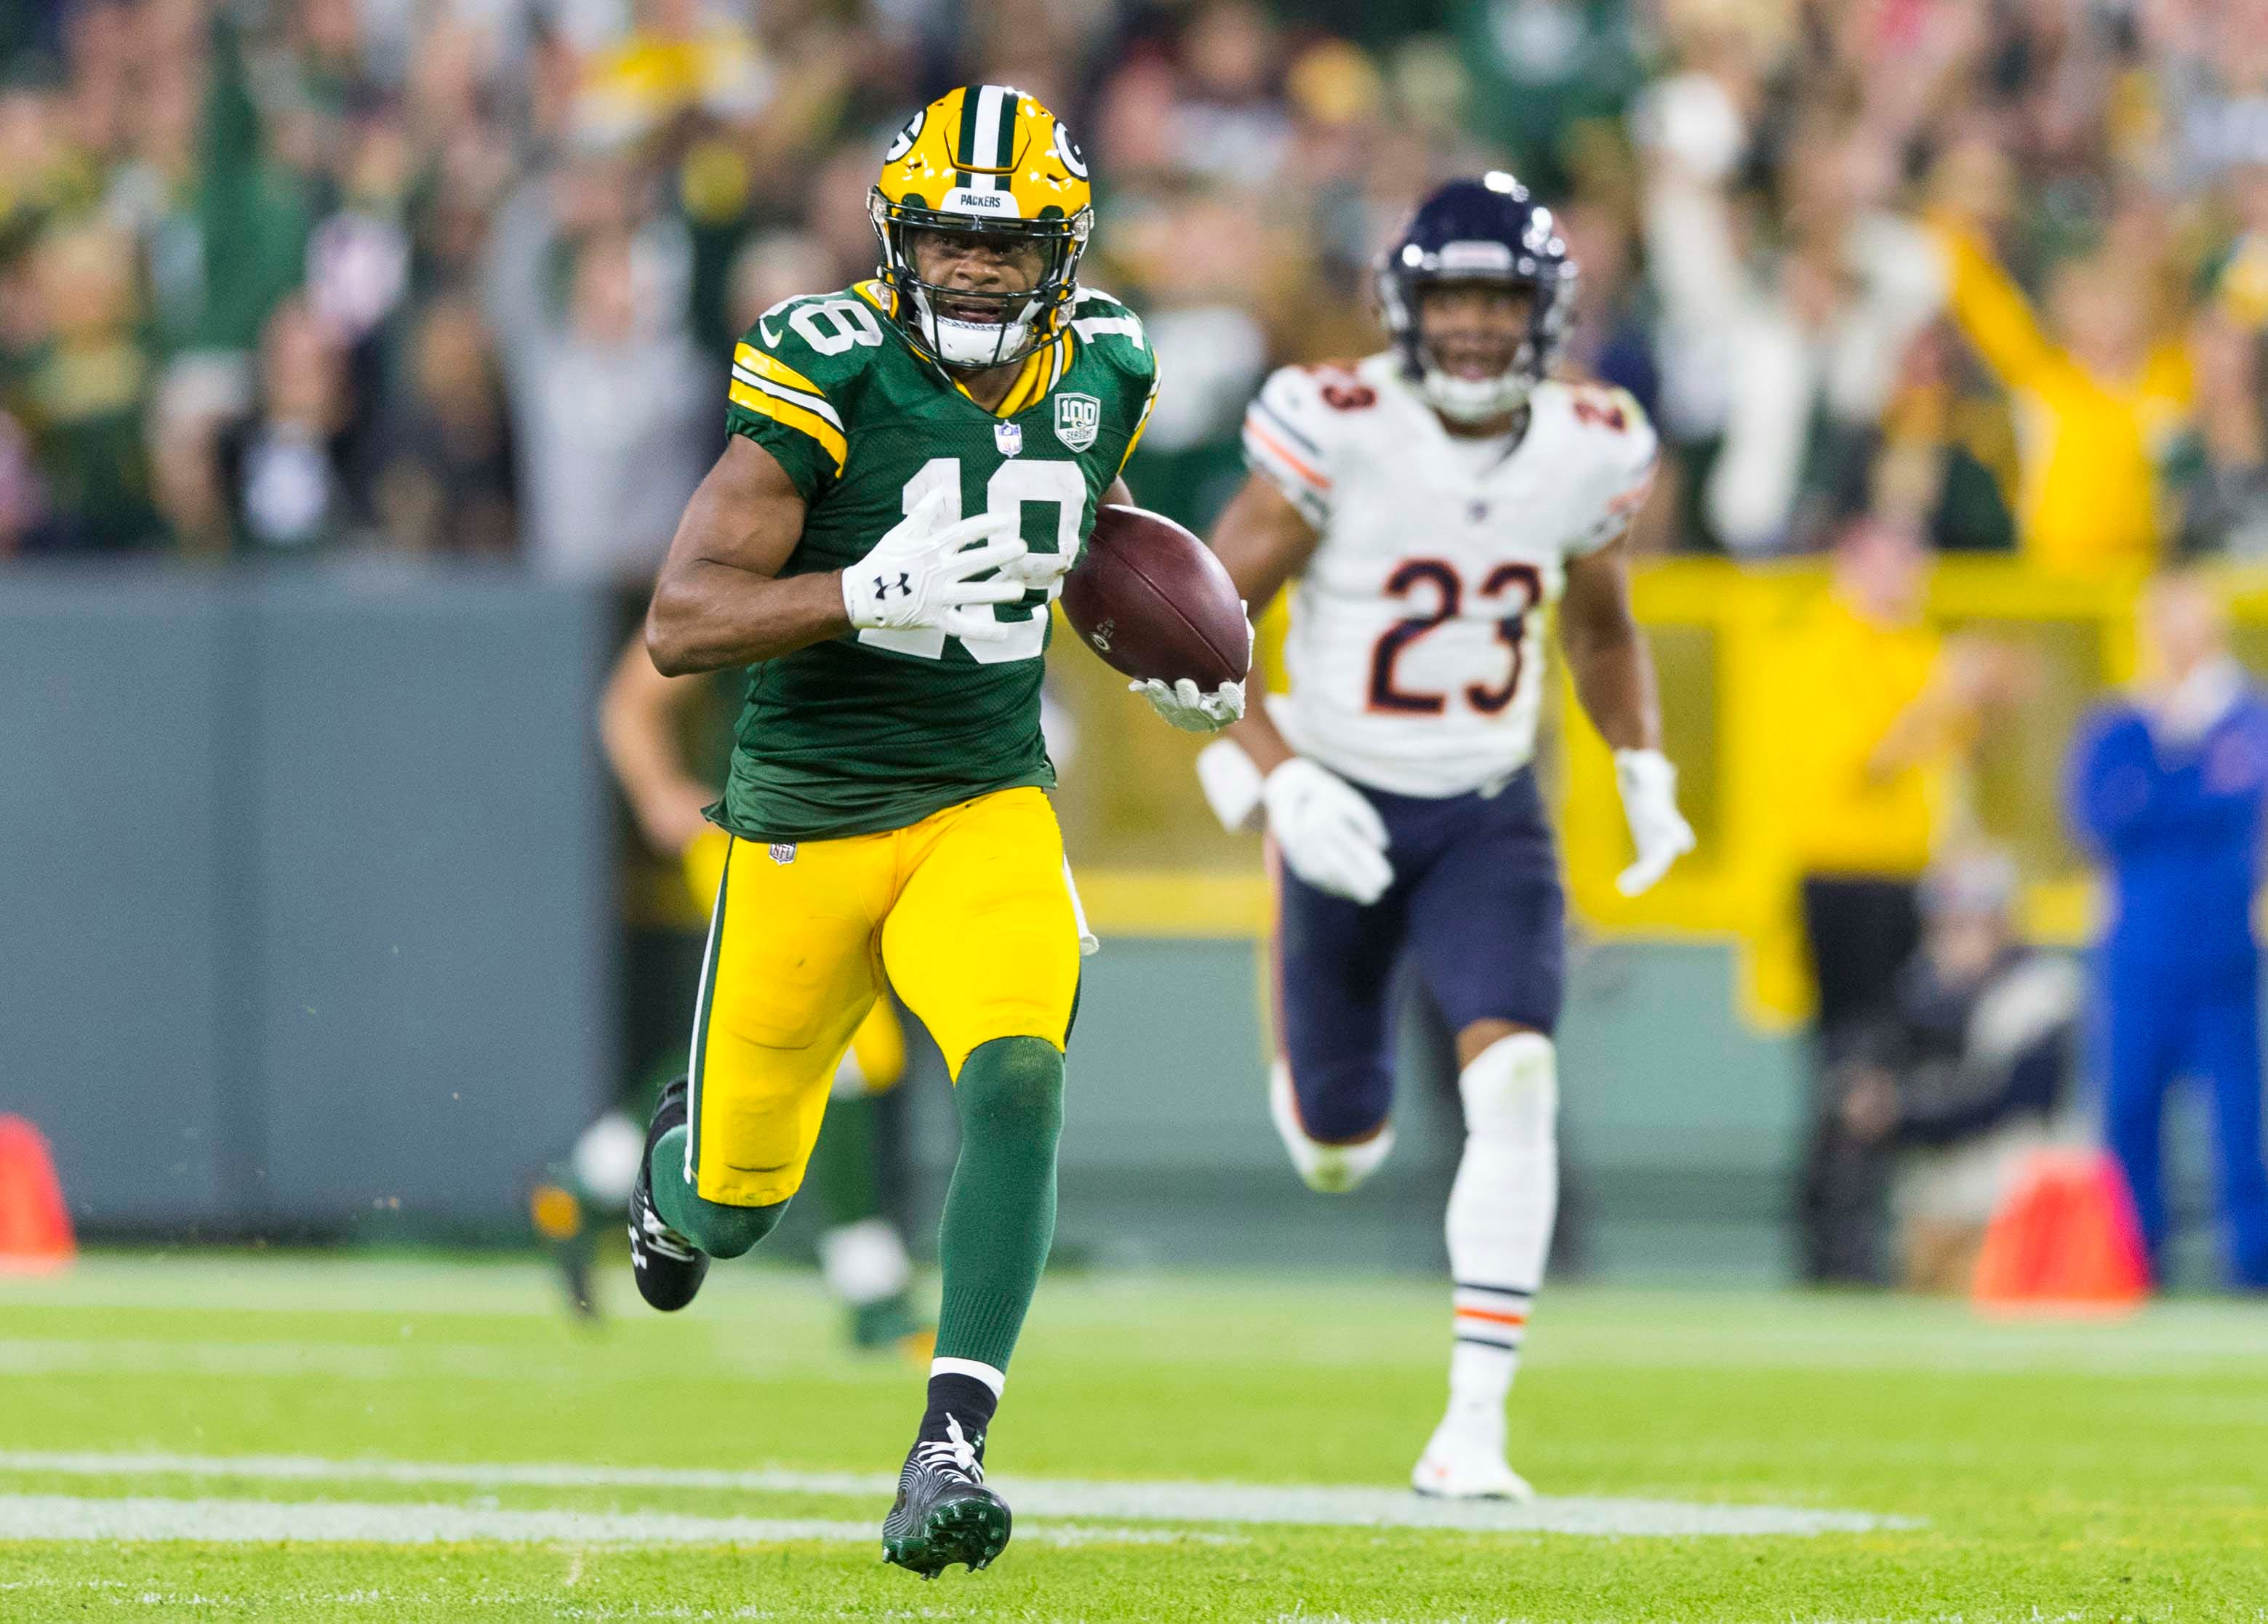 Packers WR Randall Cobb recounts 'scary' memory loss after staying on field following concussion